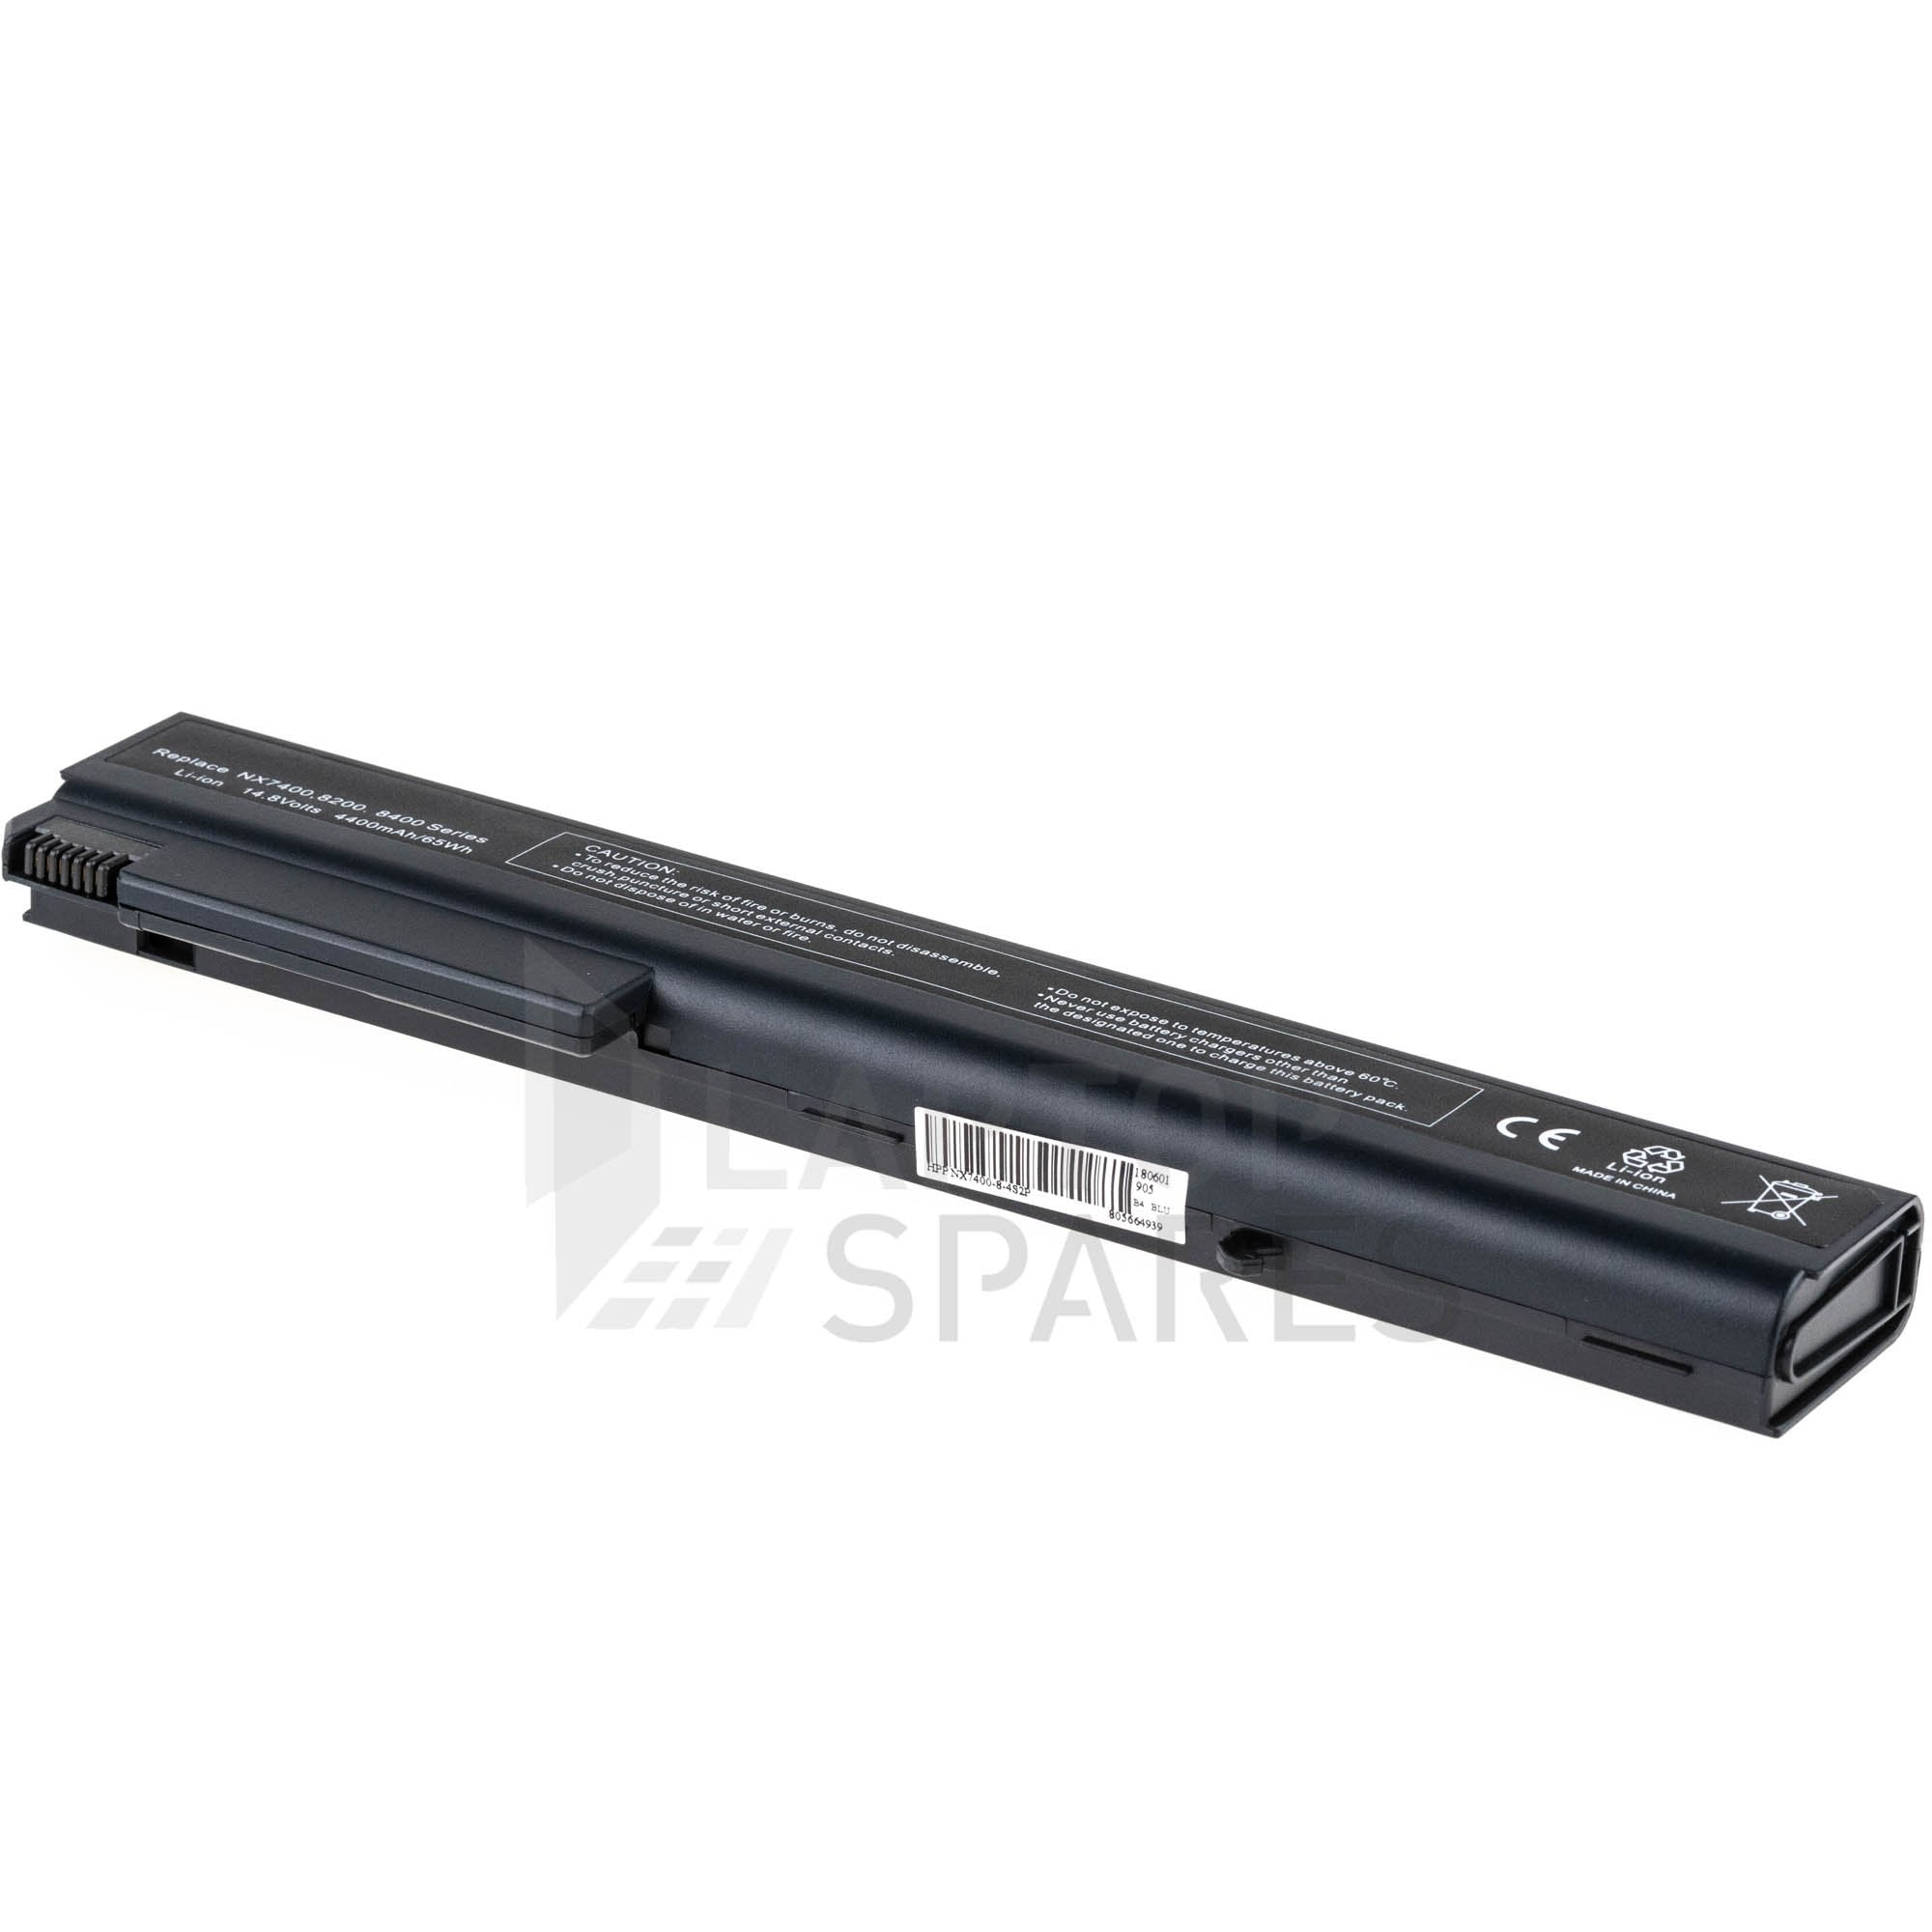 HP Business Notebook 8510P 4400mAh 6 Cell Battery